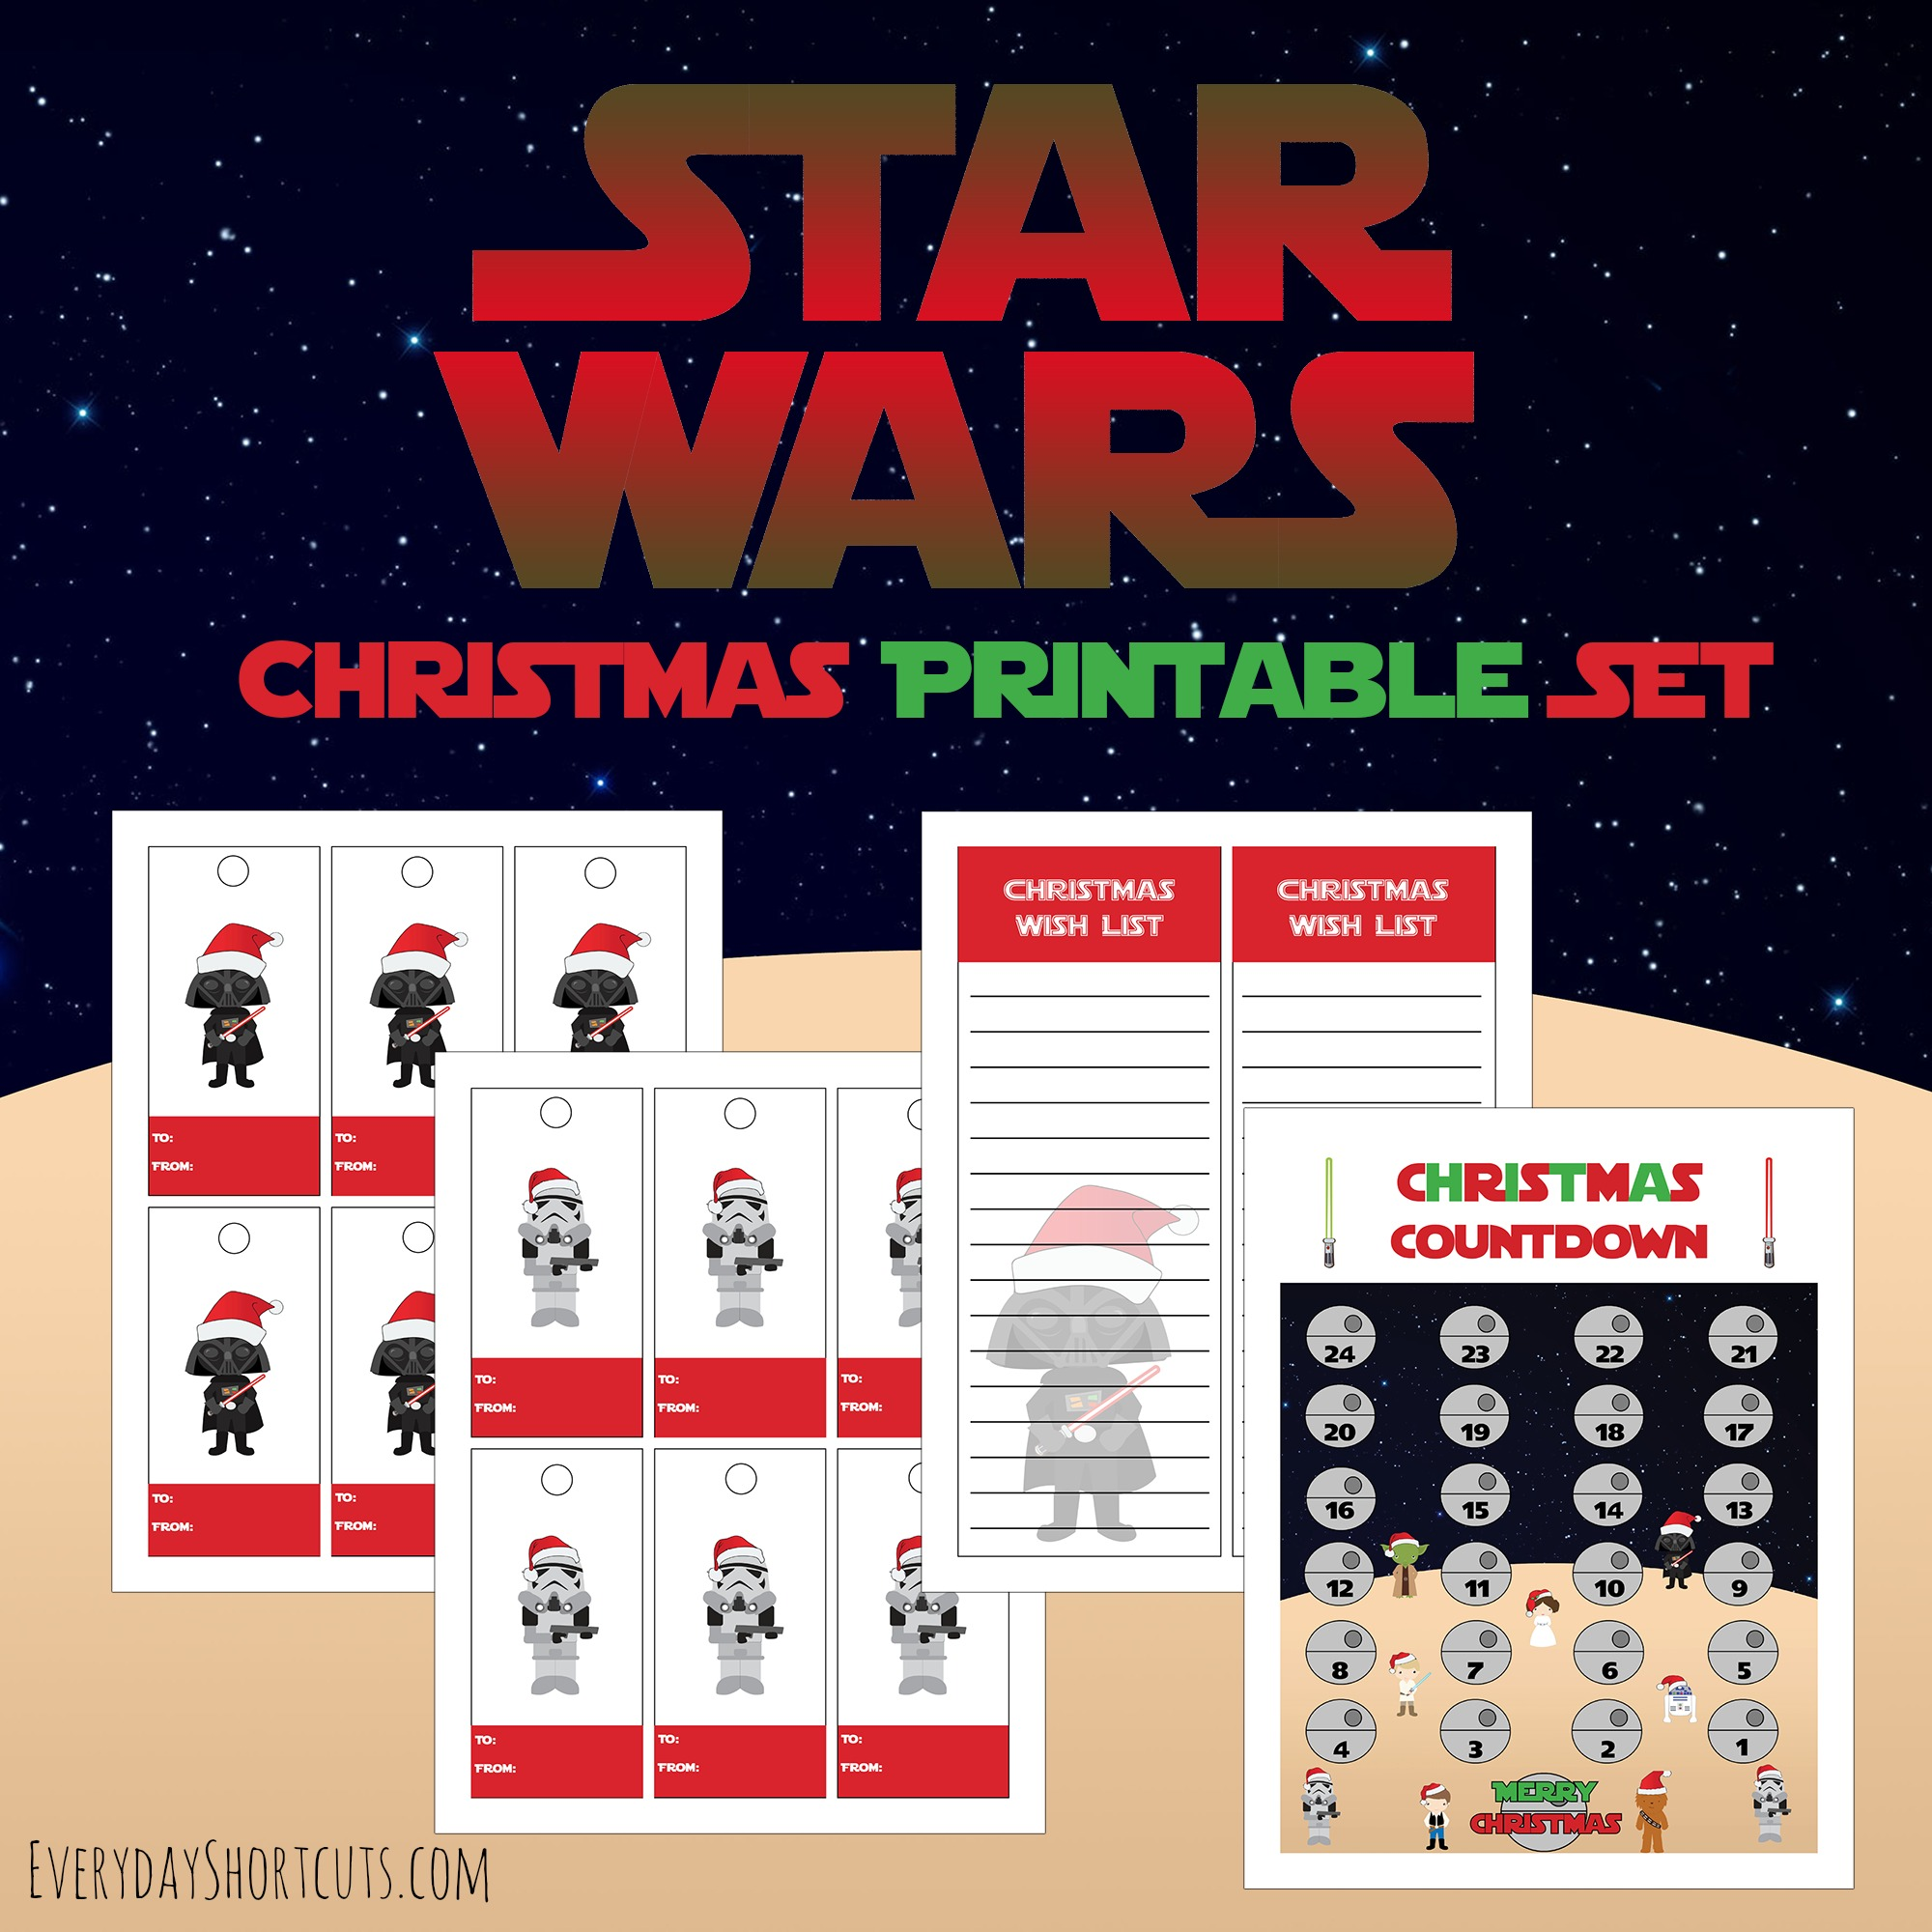 star wars themed christmas printable set